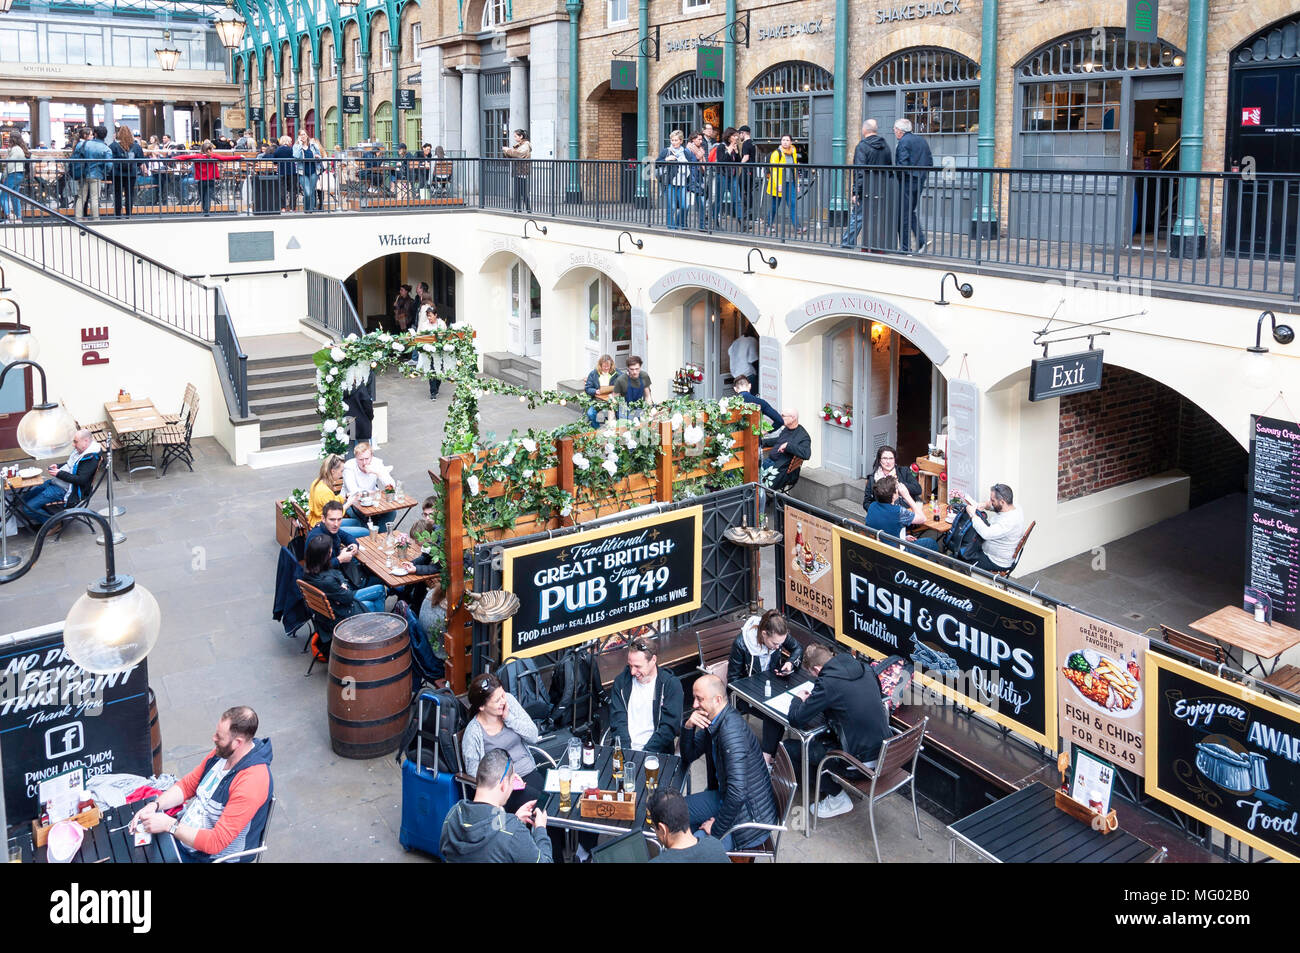 Punch and Judy Pub courtyard garden in Covent Garden Market, Covent Garden, City of Westminster, London, England, United Kingdom - Stock Image